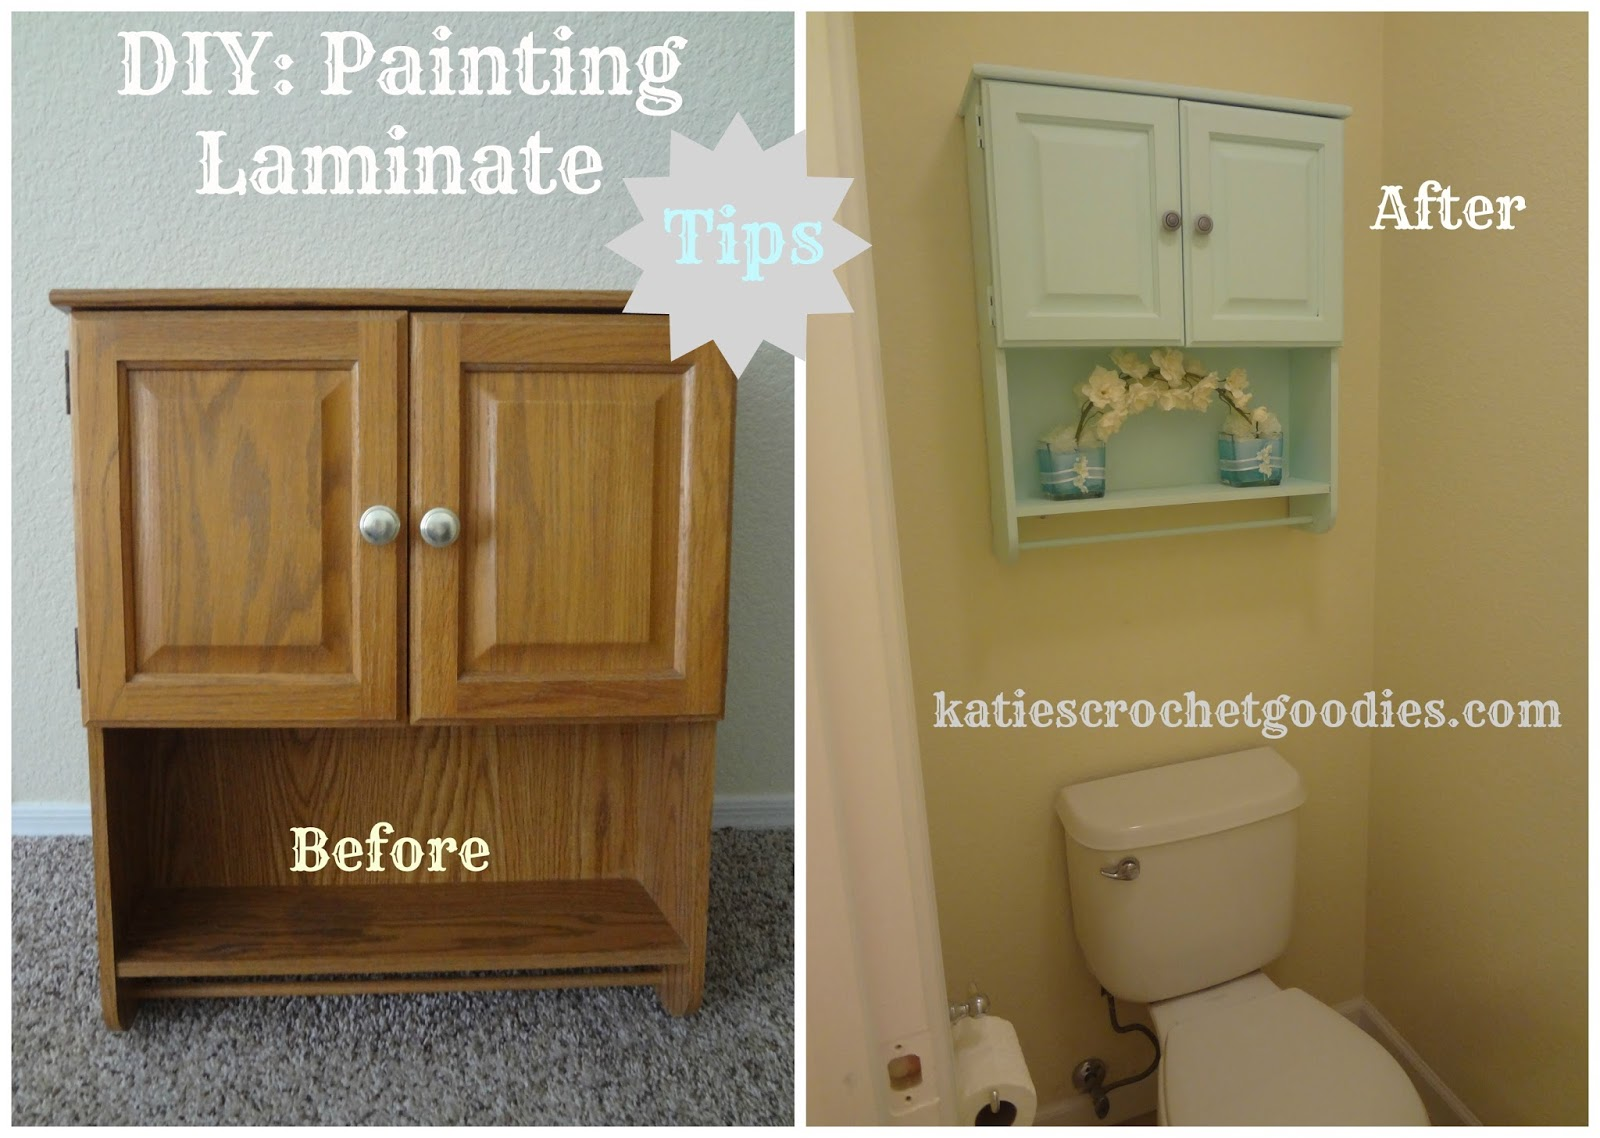 Painting Laminate Cabinet